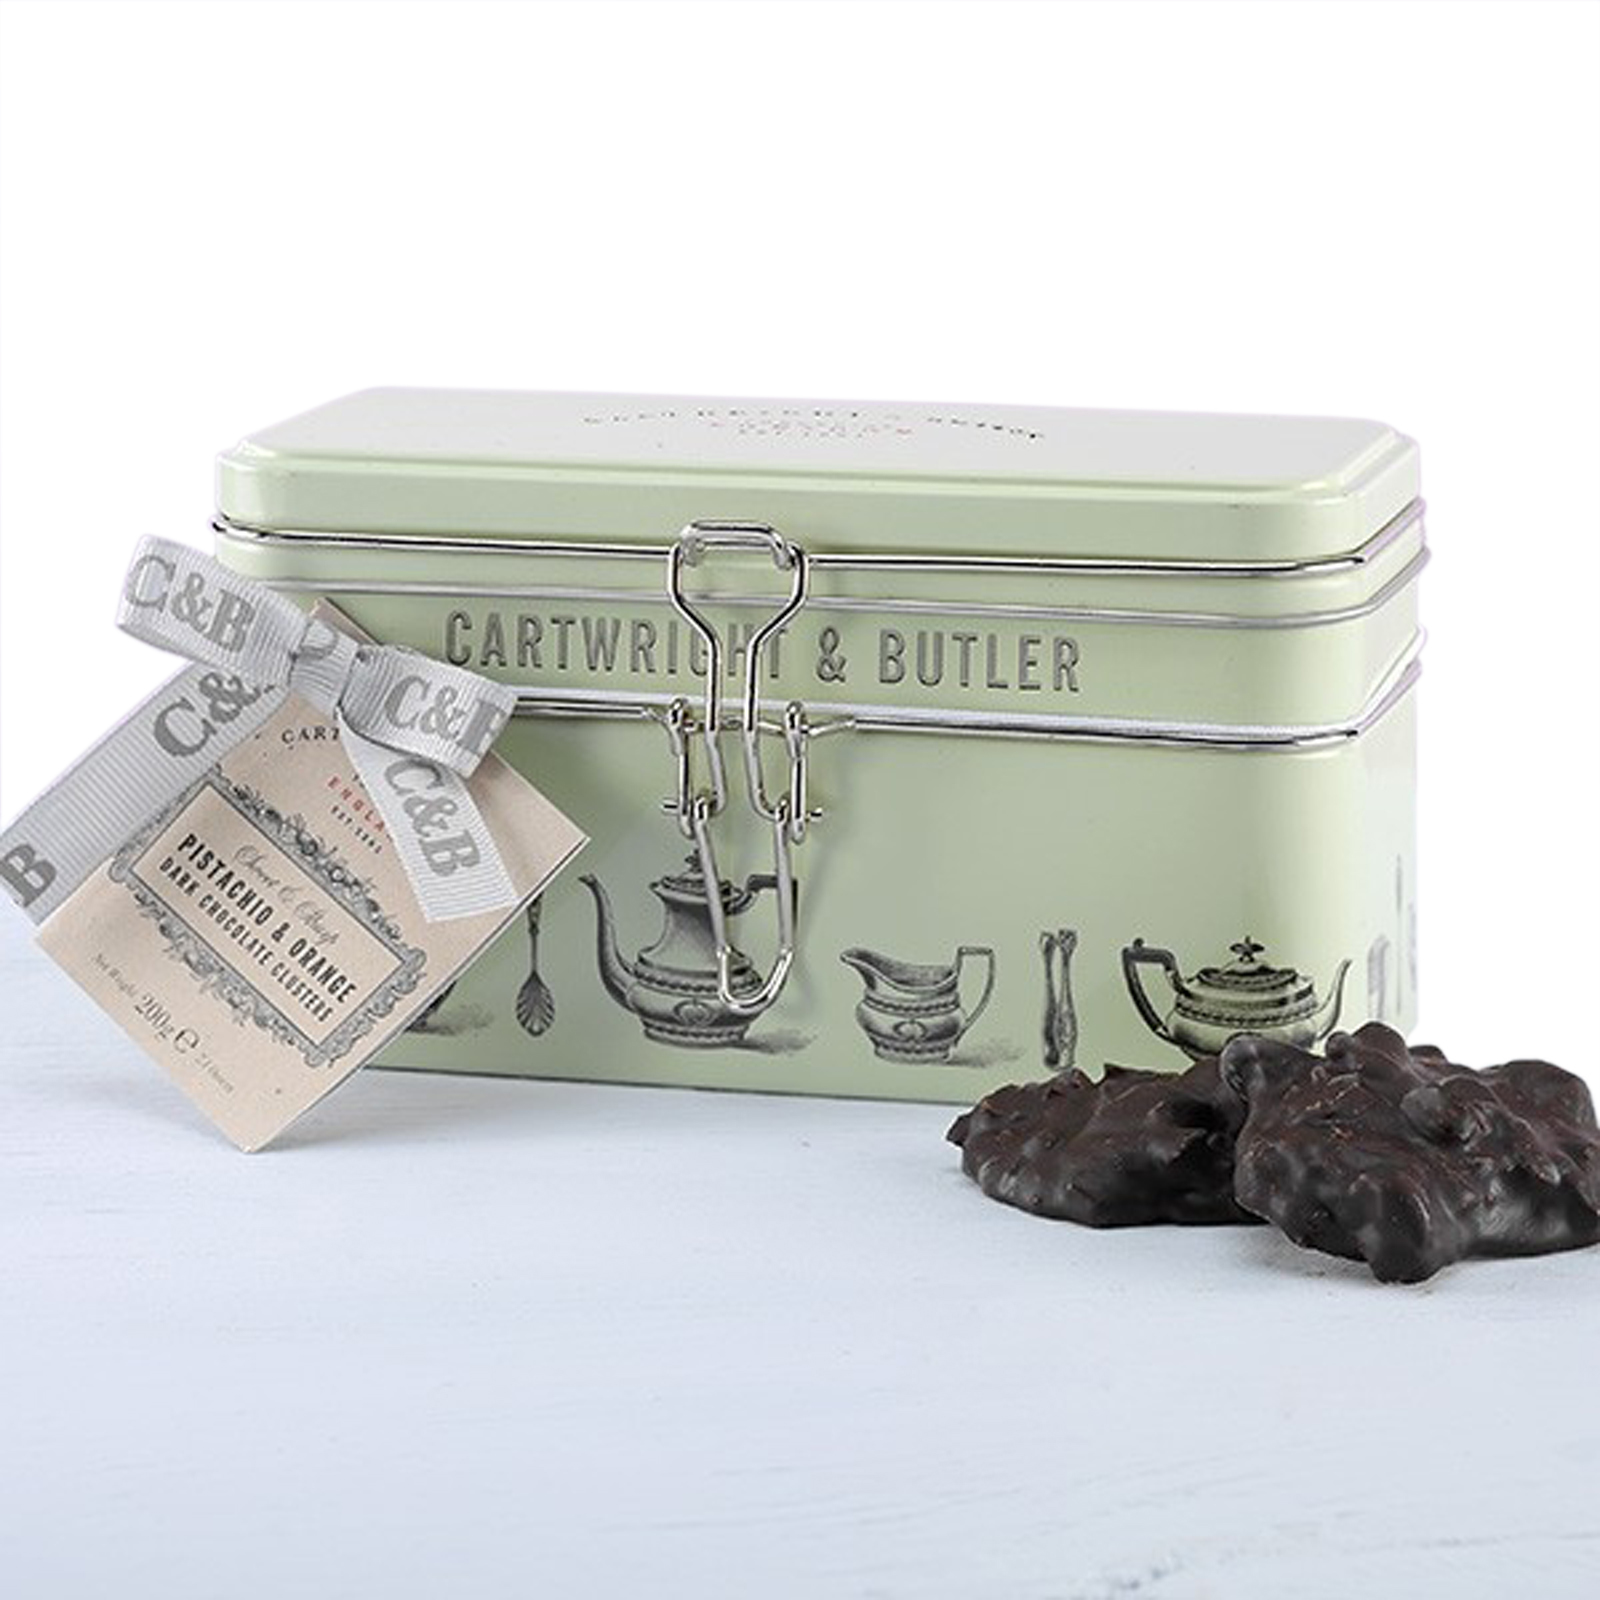 Pistachio & Orange Dark Chocolate Clusters in a Tin by Cartwright & Butler